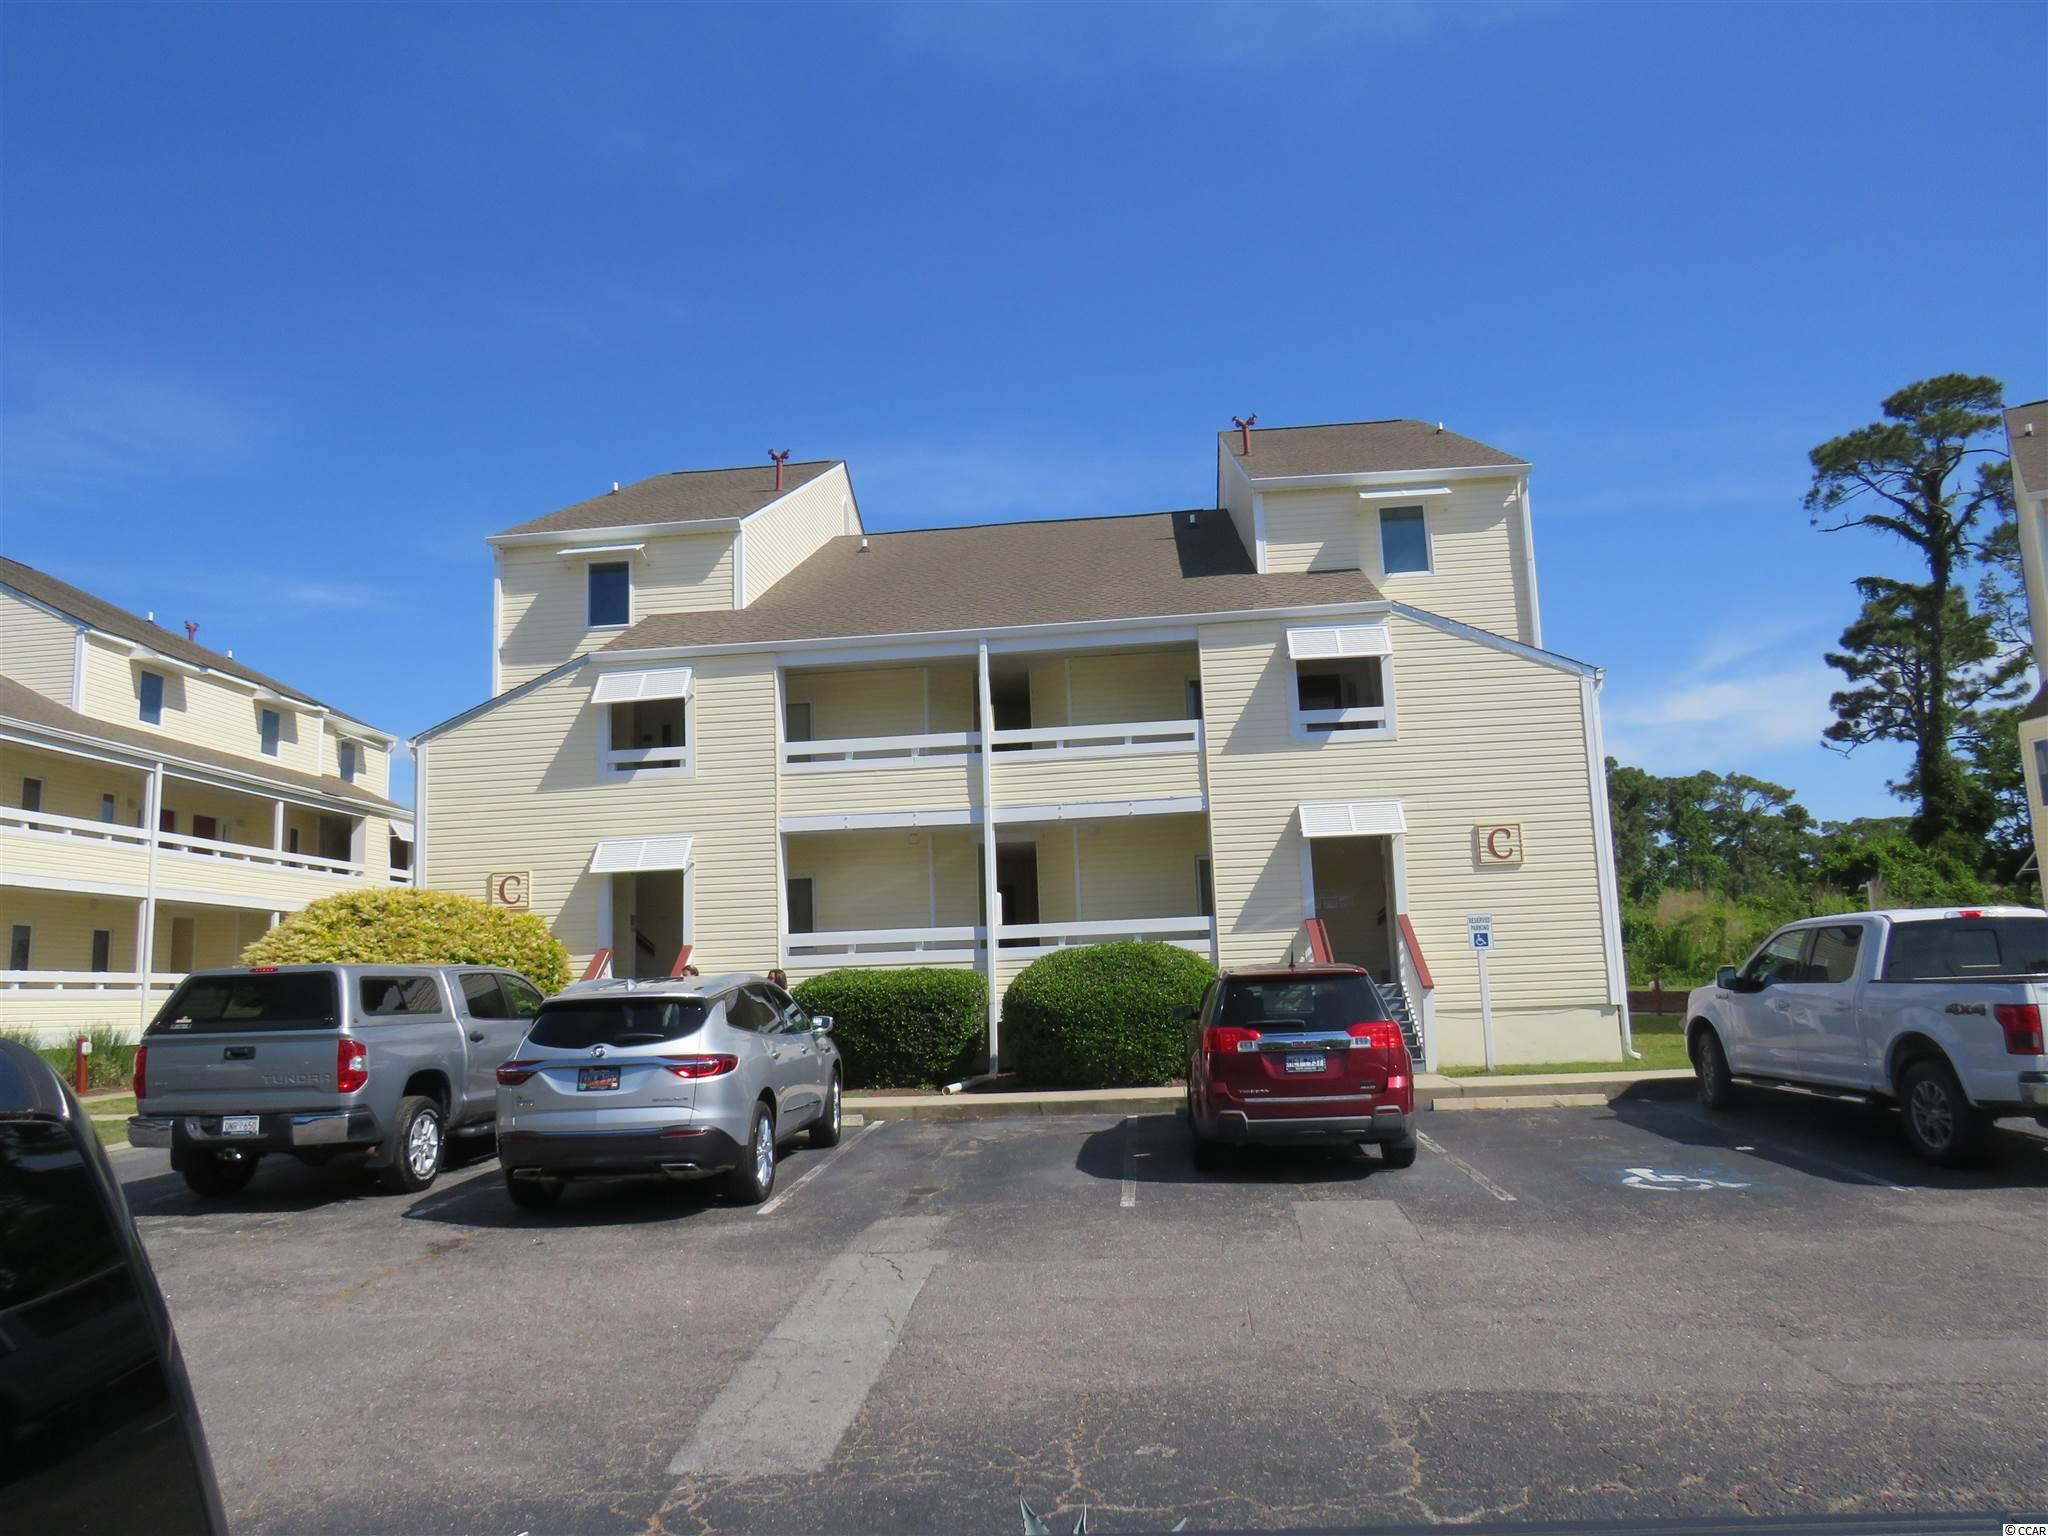 1 BEDROOM CONDO CLOSE TO BEACH, SHOPPING RESTAURANTS IN WALKING DISTANCE. OWNER SAYS BRING OFFERS, MORE PHOTOS COMING NEXT WEEK , THERE IS A TENANT IN PLACE MONTH TO MONTH SO YOU CAN BUY AS AN INVESTMENT OR TENANT WILL BE OUT BY CLOSING. CALL YOUR AGENT TODAY BEFOR THIS ONE GETS AWAY.